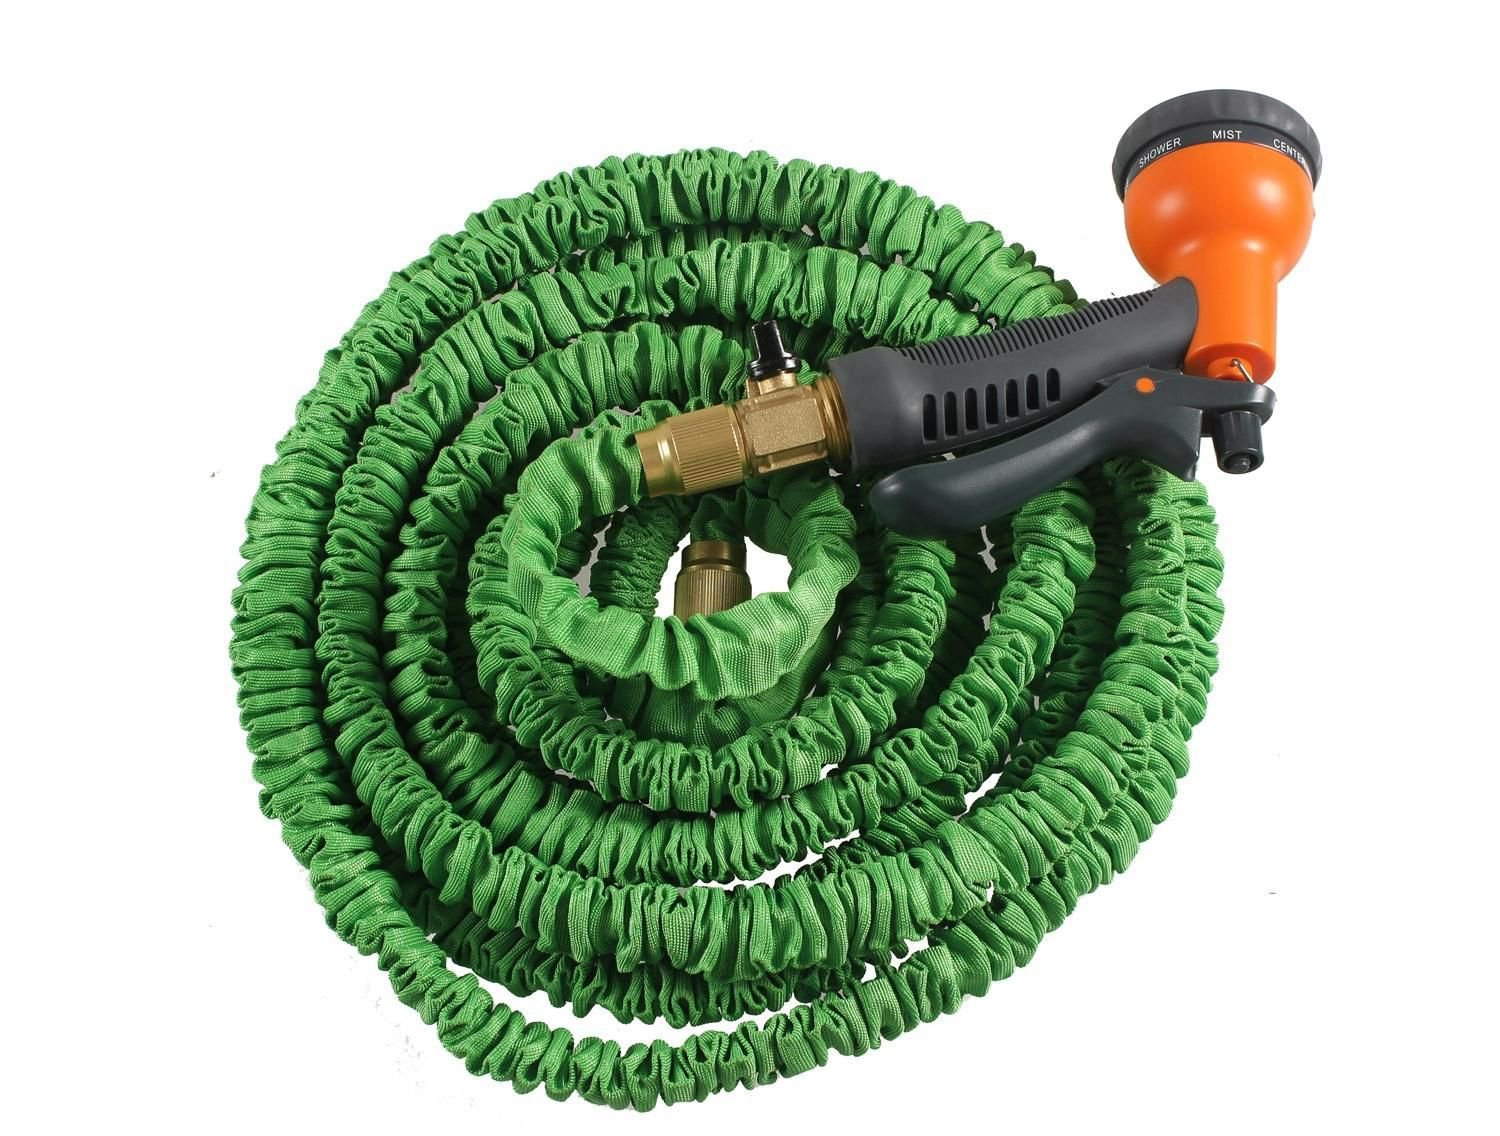 E double latex 100 ft expandable garden water hose spray nozzle Expandable garden hose 100 ft